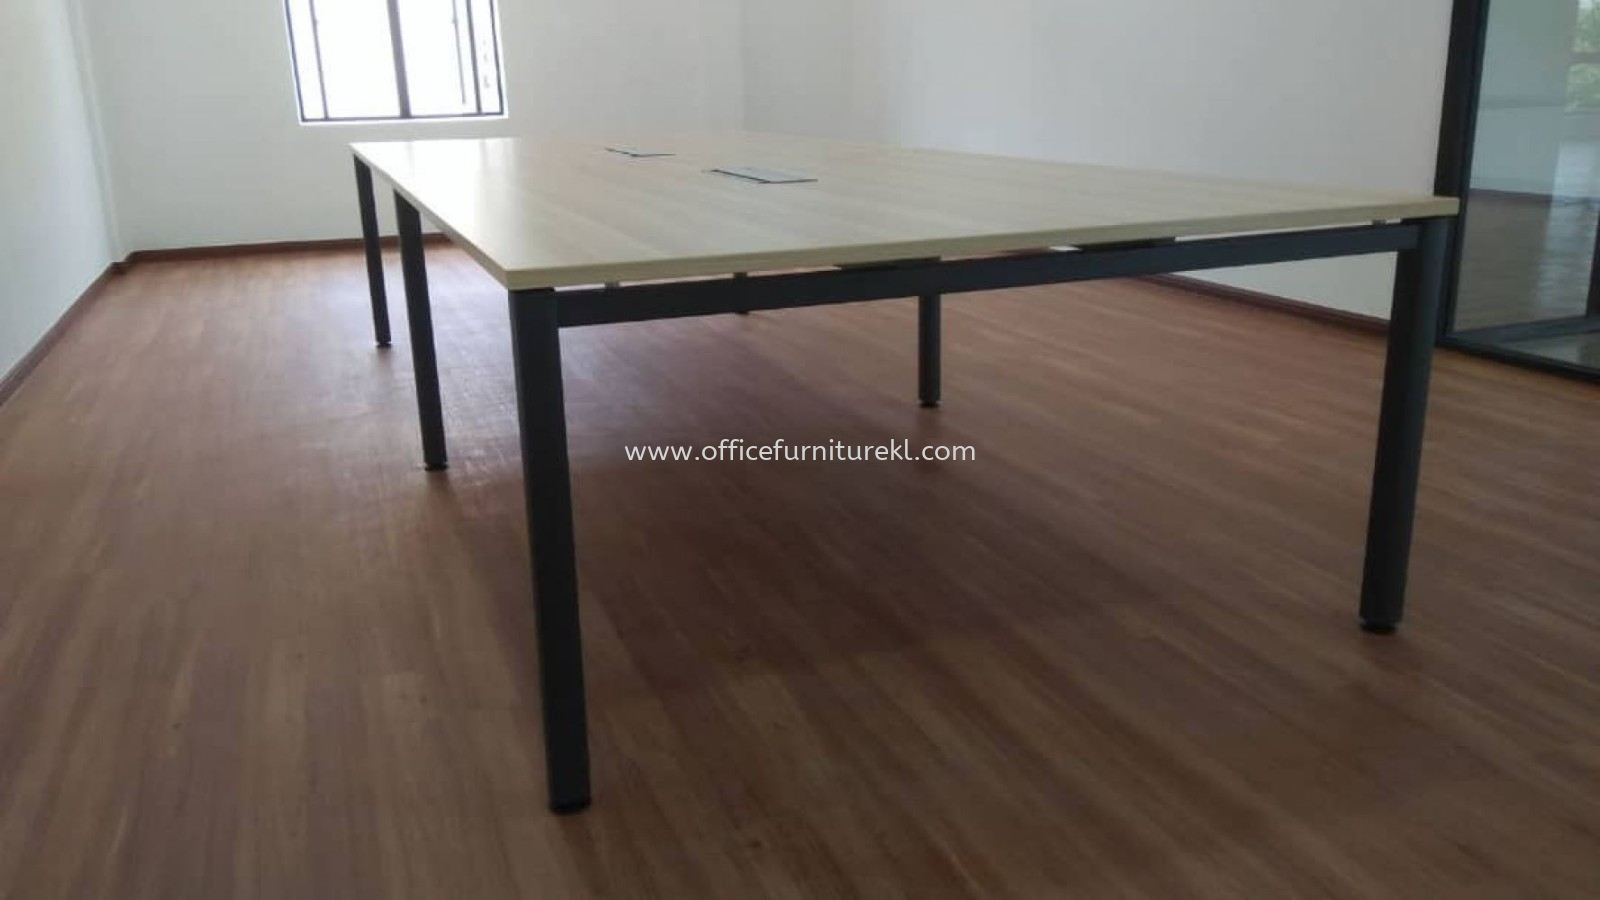 FREE DELIVERY & INSTALLATION MUPHI MEETING OFFICE TABLE SVB 30 l RECTANGULAR TABLE OFFICE FURNITURE l GOMBAK l KUALA LUMPUR l TOP 10 BEST RECOMMEND